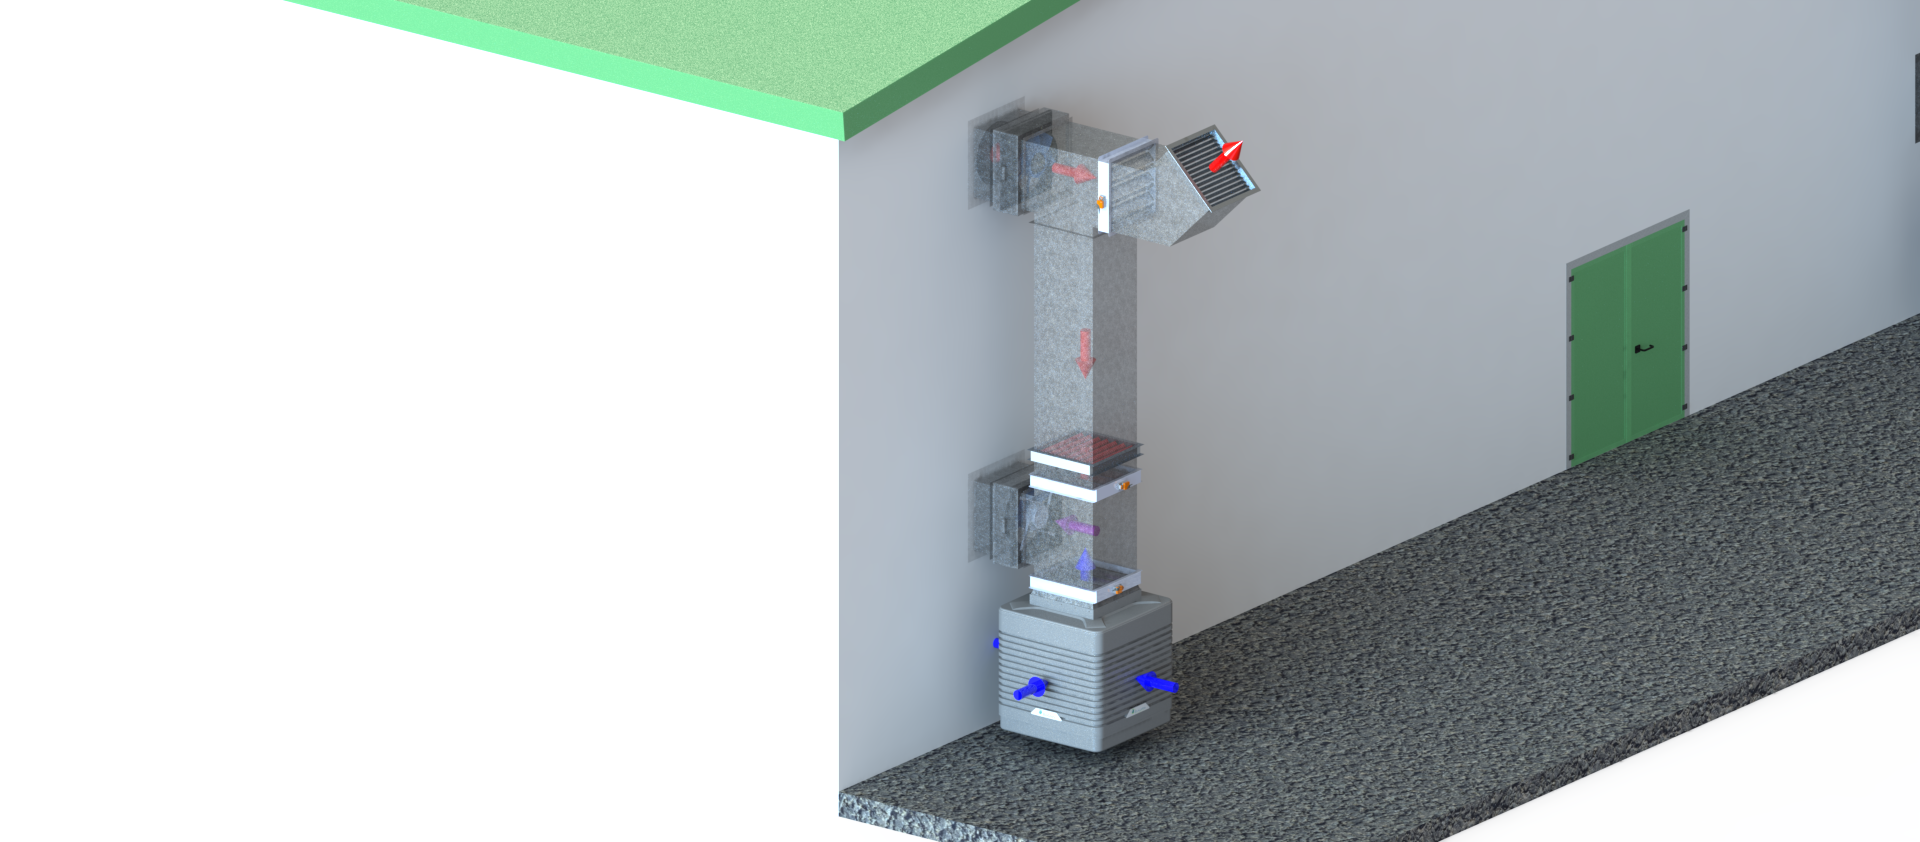 EcoCooling WetBox Large - Top Flow Configuration - Floor mounted air handling solution with EC fans